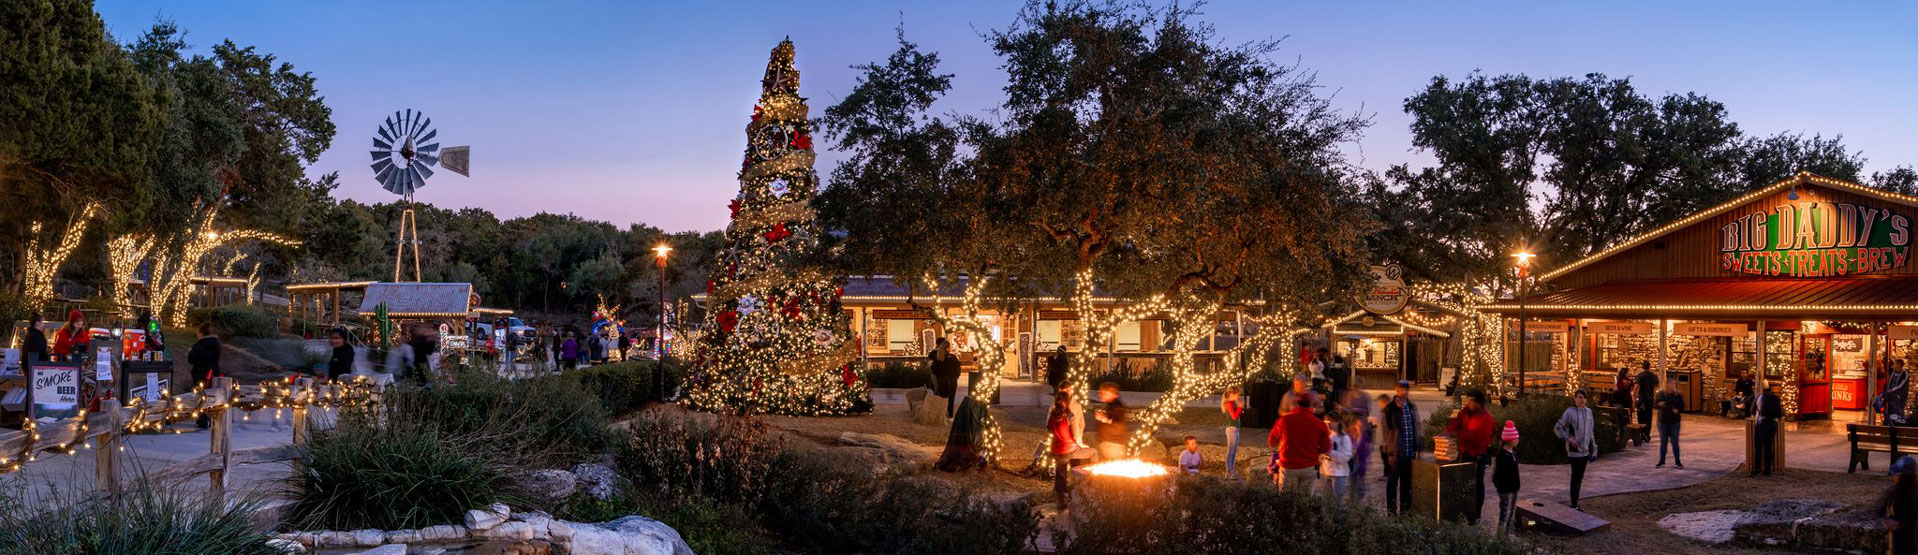 Christmas in Discovery Village | Natural Bridge Caverns